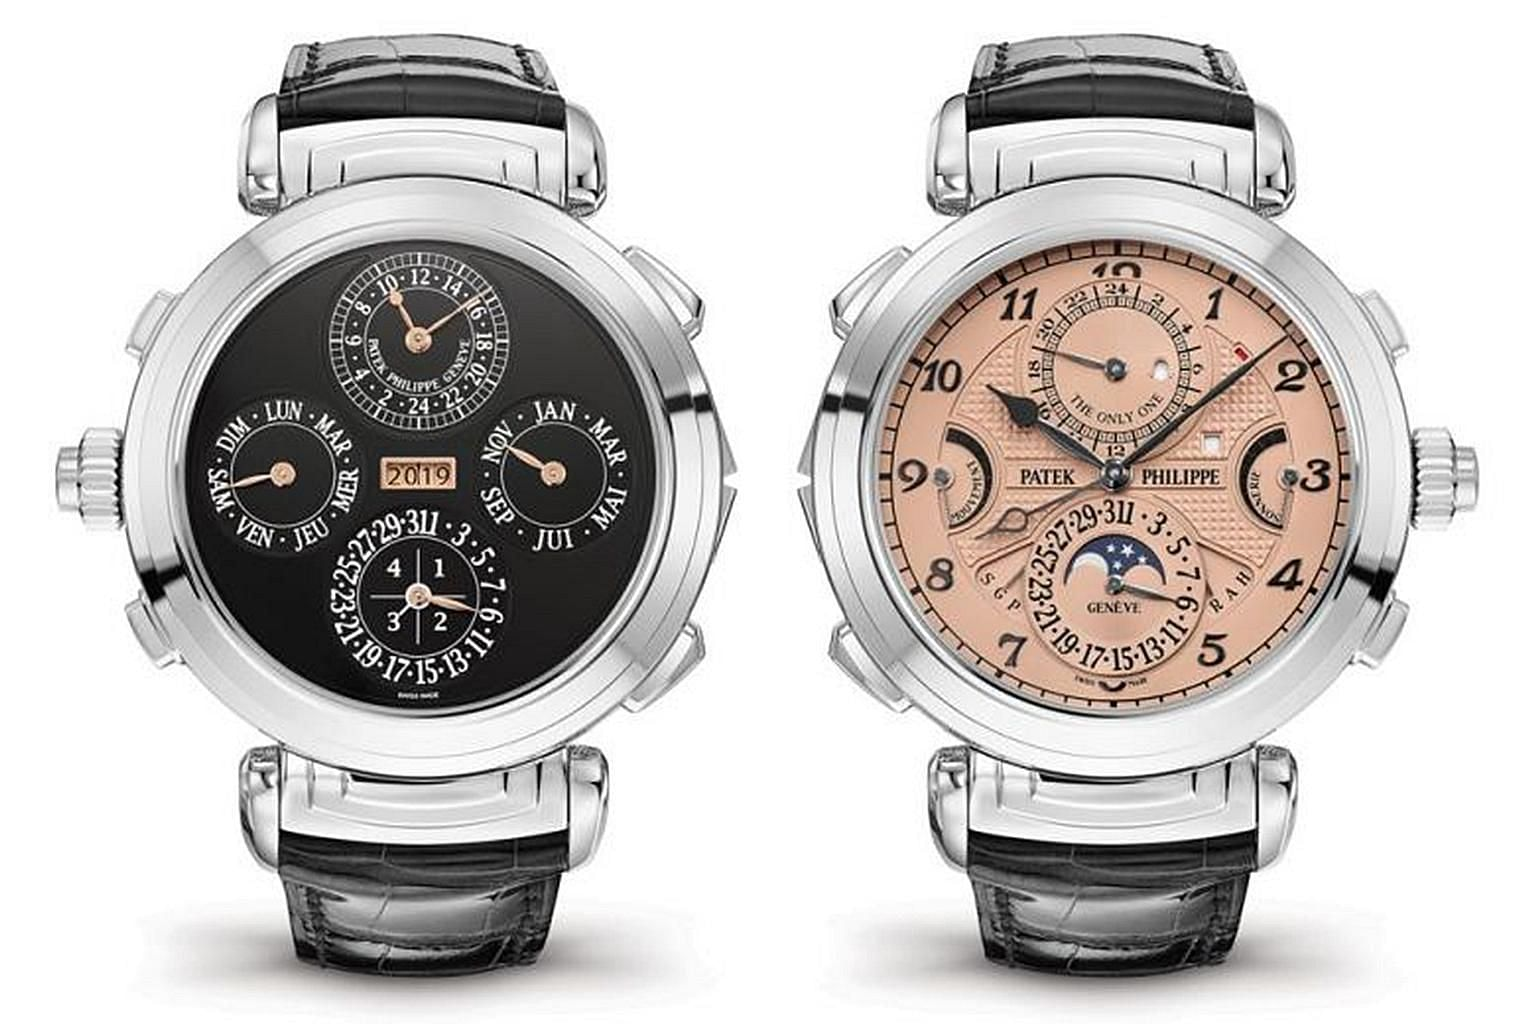 The Patek Philippe steel Grandmaster Chime has two dials, the other is on the back, and 20 special functions. It was sold last Saturday at an event called Only Watch.